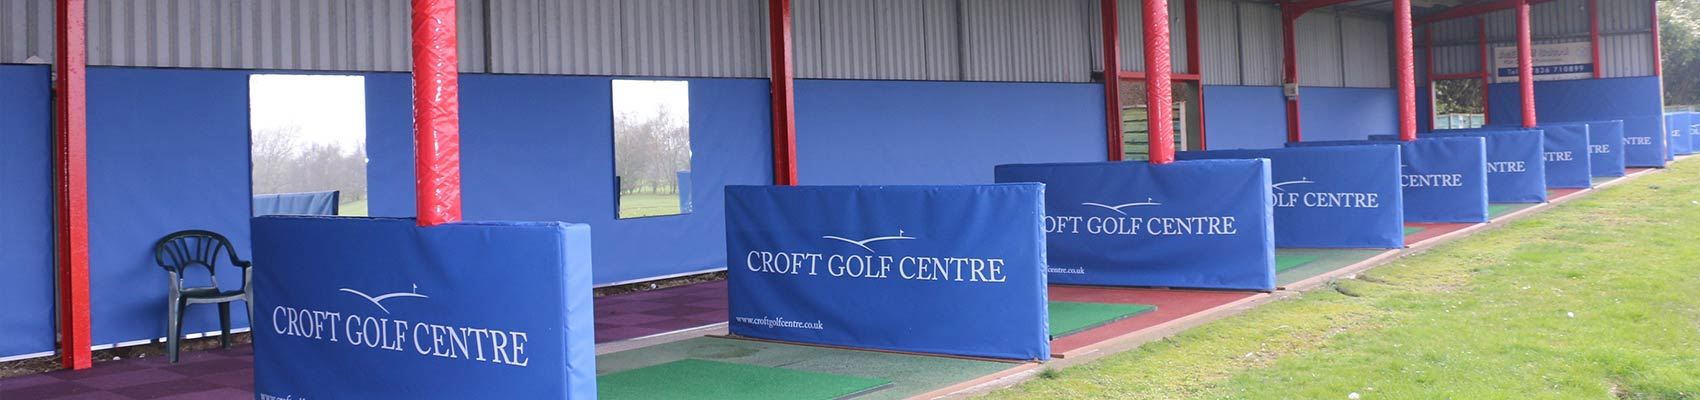 Croft Golf Centre Driving Range Refurb